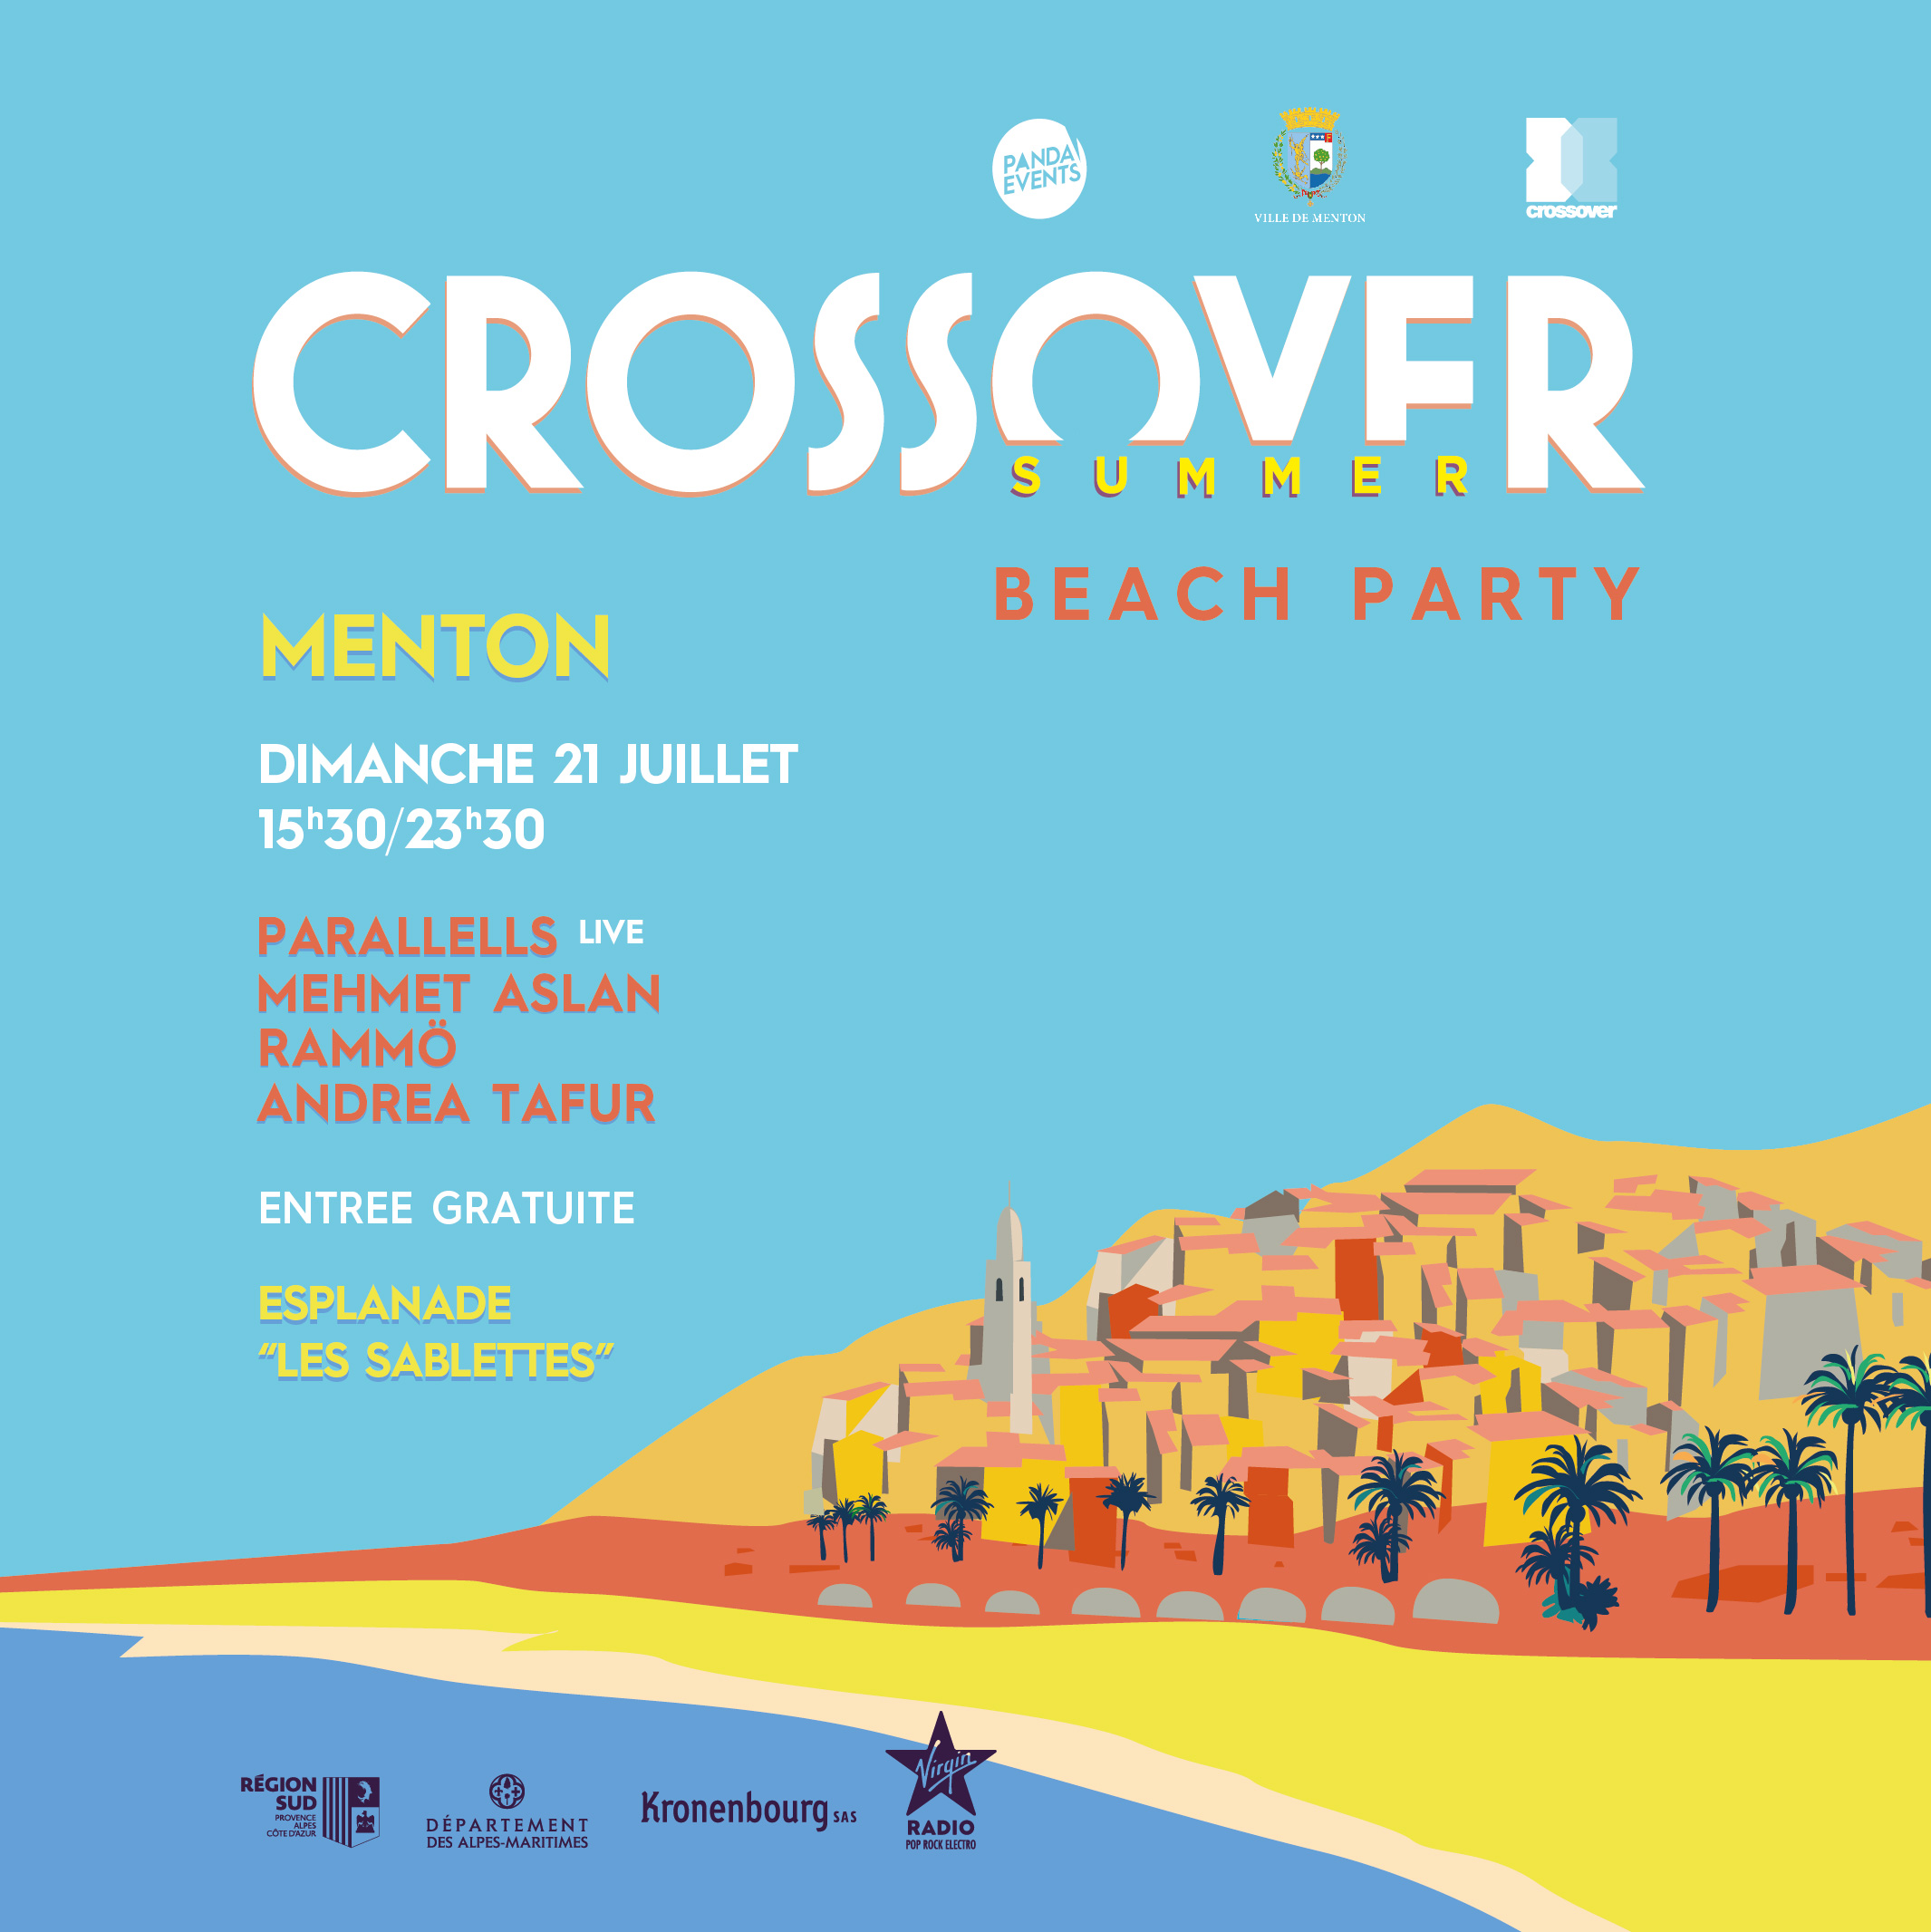 Crossover Summer Beach Party